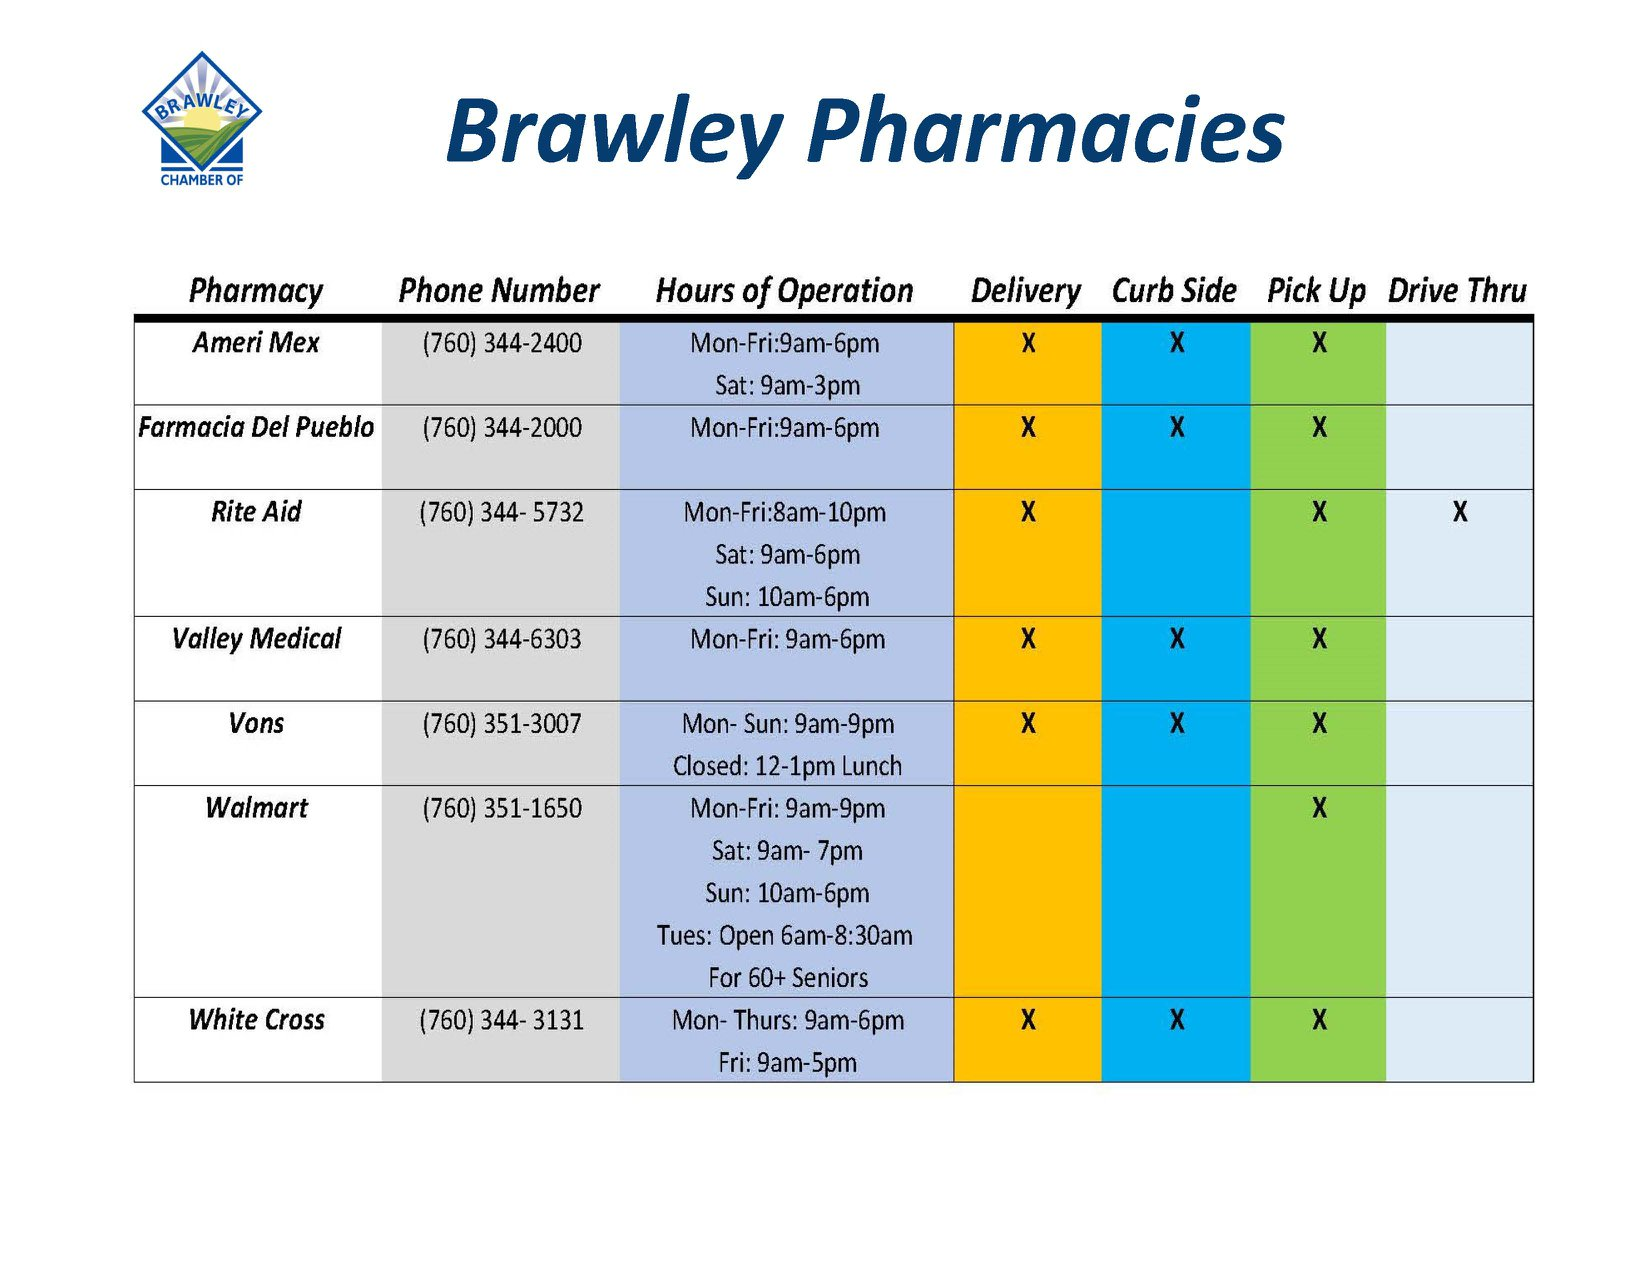 Brawley-Pharmacies.jpg